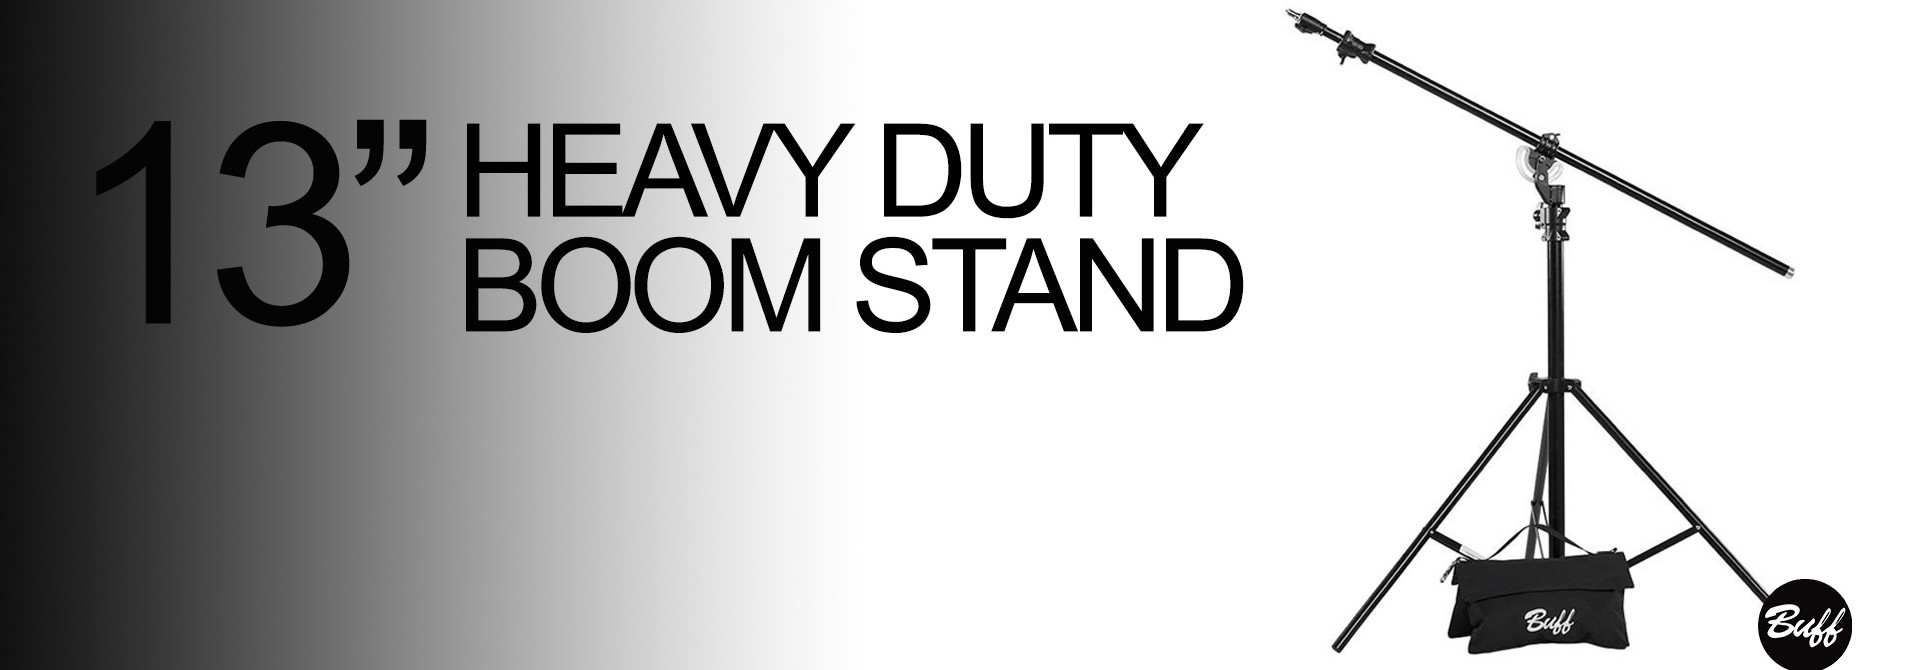 HEAVY DUTY BOOM STAND